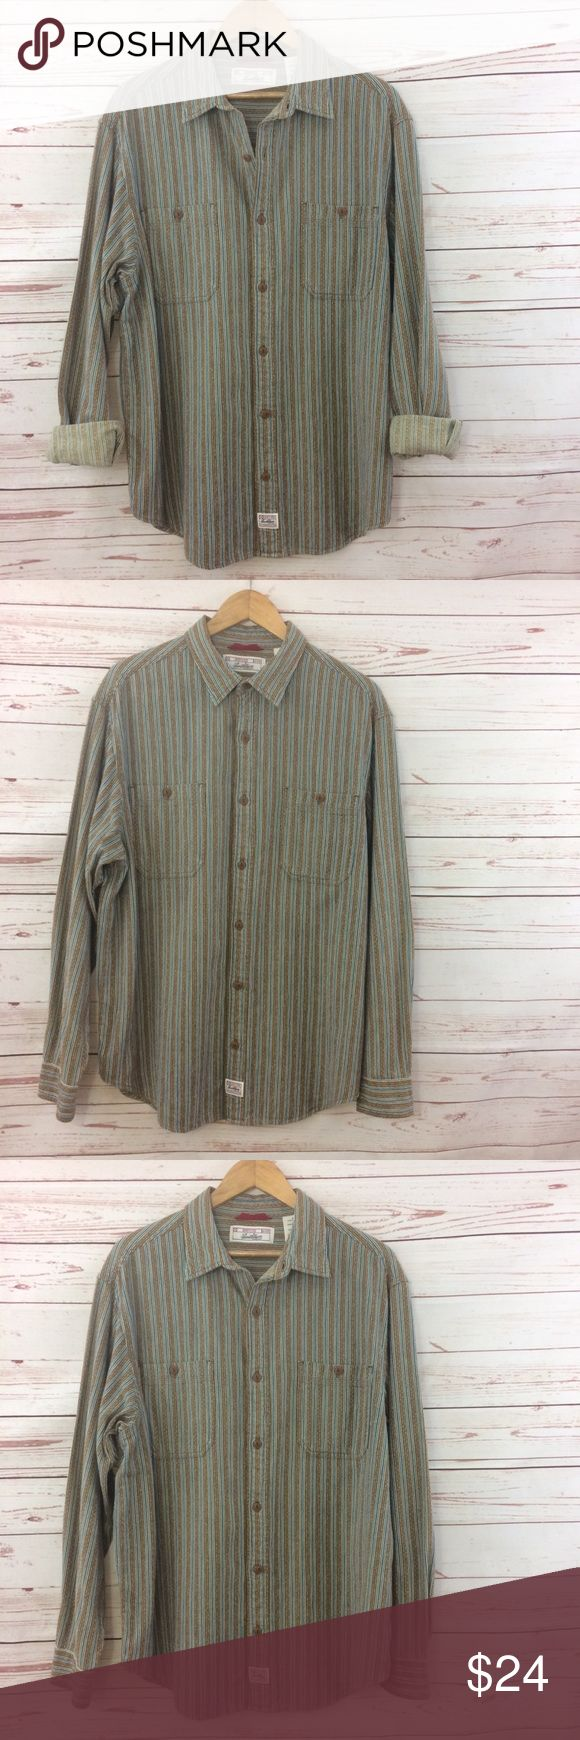 """Vintage Levi Stauss Signature Shirt Levi's vintage button down shirt. Two chest pockets with button closure. Stripes with a stitching pattern that is blue, tan, and white. 100% cotton. Measurements approximately as follows: chest 23.5"""", sleeves 25"""", length front 30"""" and back length is 31"""". R1 Levi's Shirts Casual Button Down Shirts"""